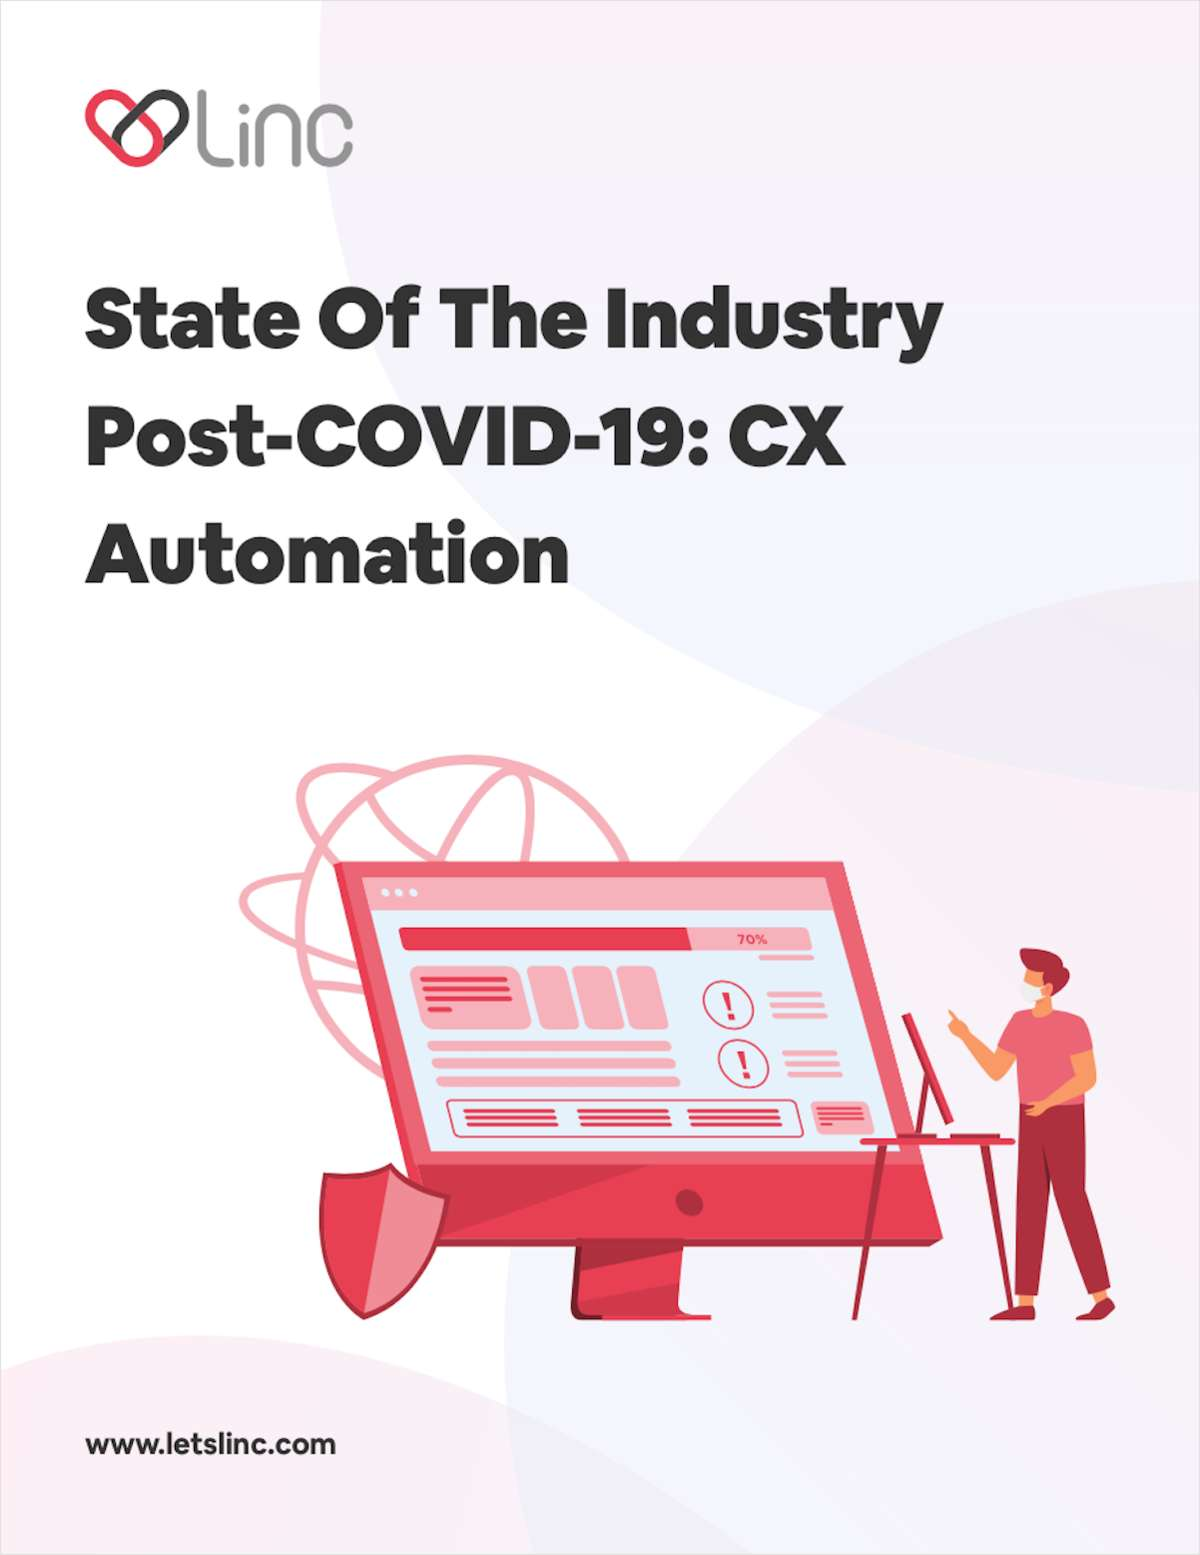 State of the Industry Post-COVID-19: CX Automation